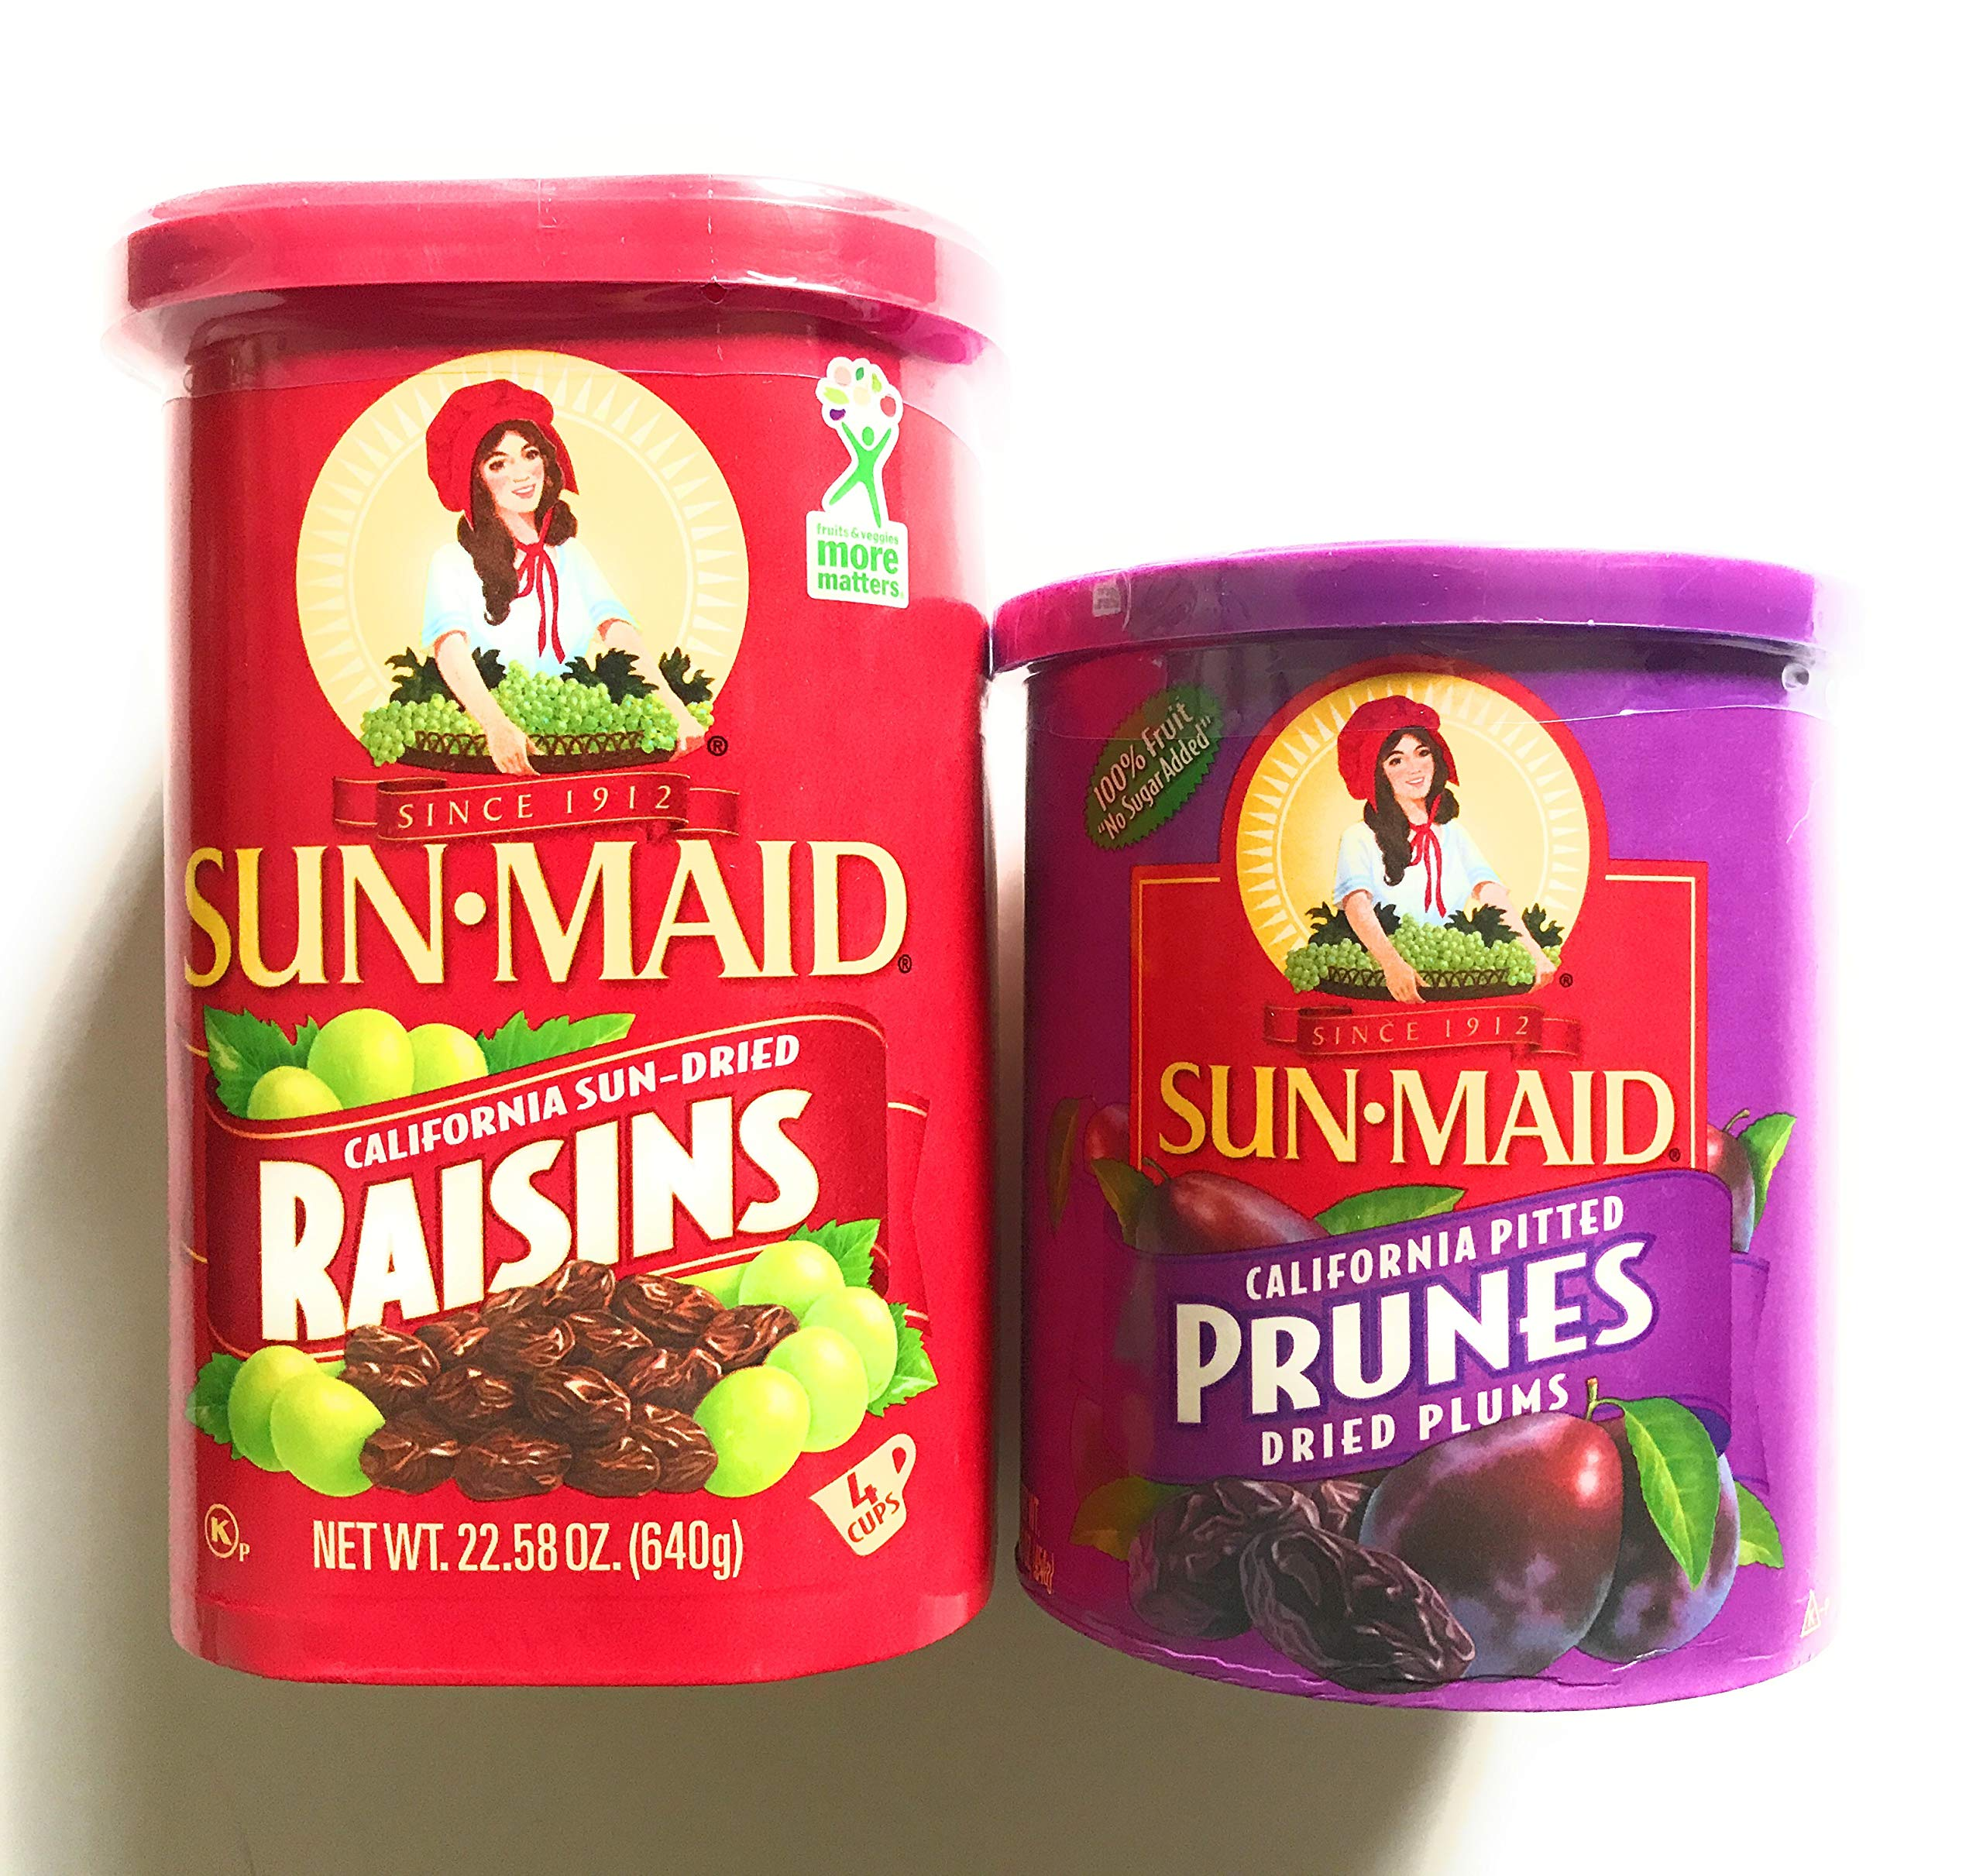 Sunmaid Raisins and Prunes Bundle - One 22 Ounce Container of Raisins and One 16 Ounce Container of Dried Prunes - GREAT DEAL!